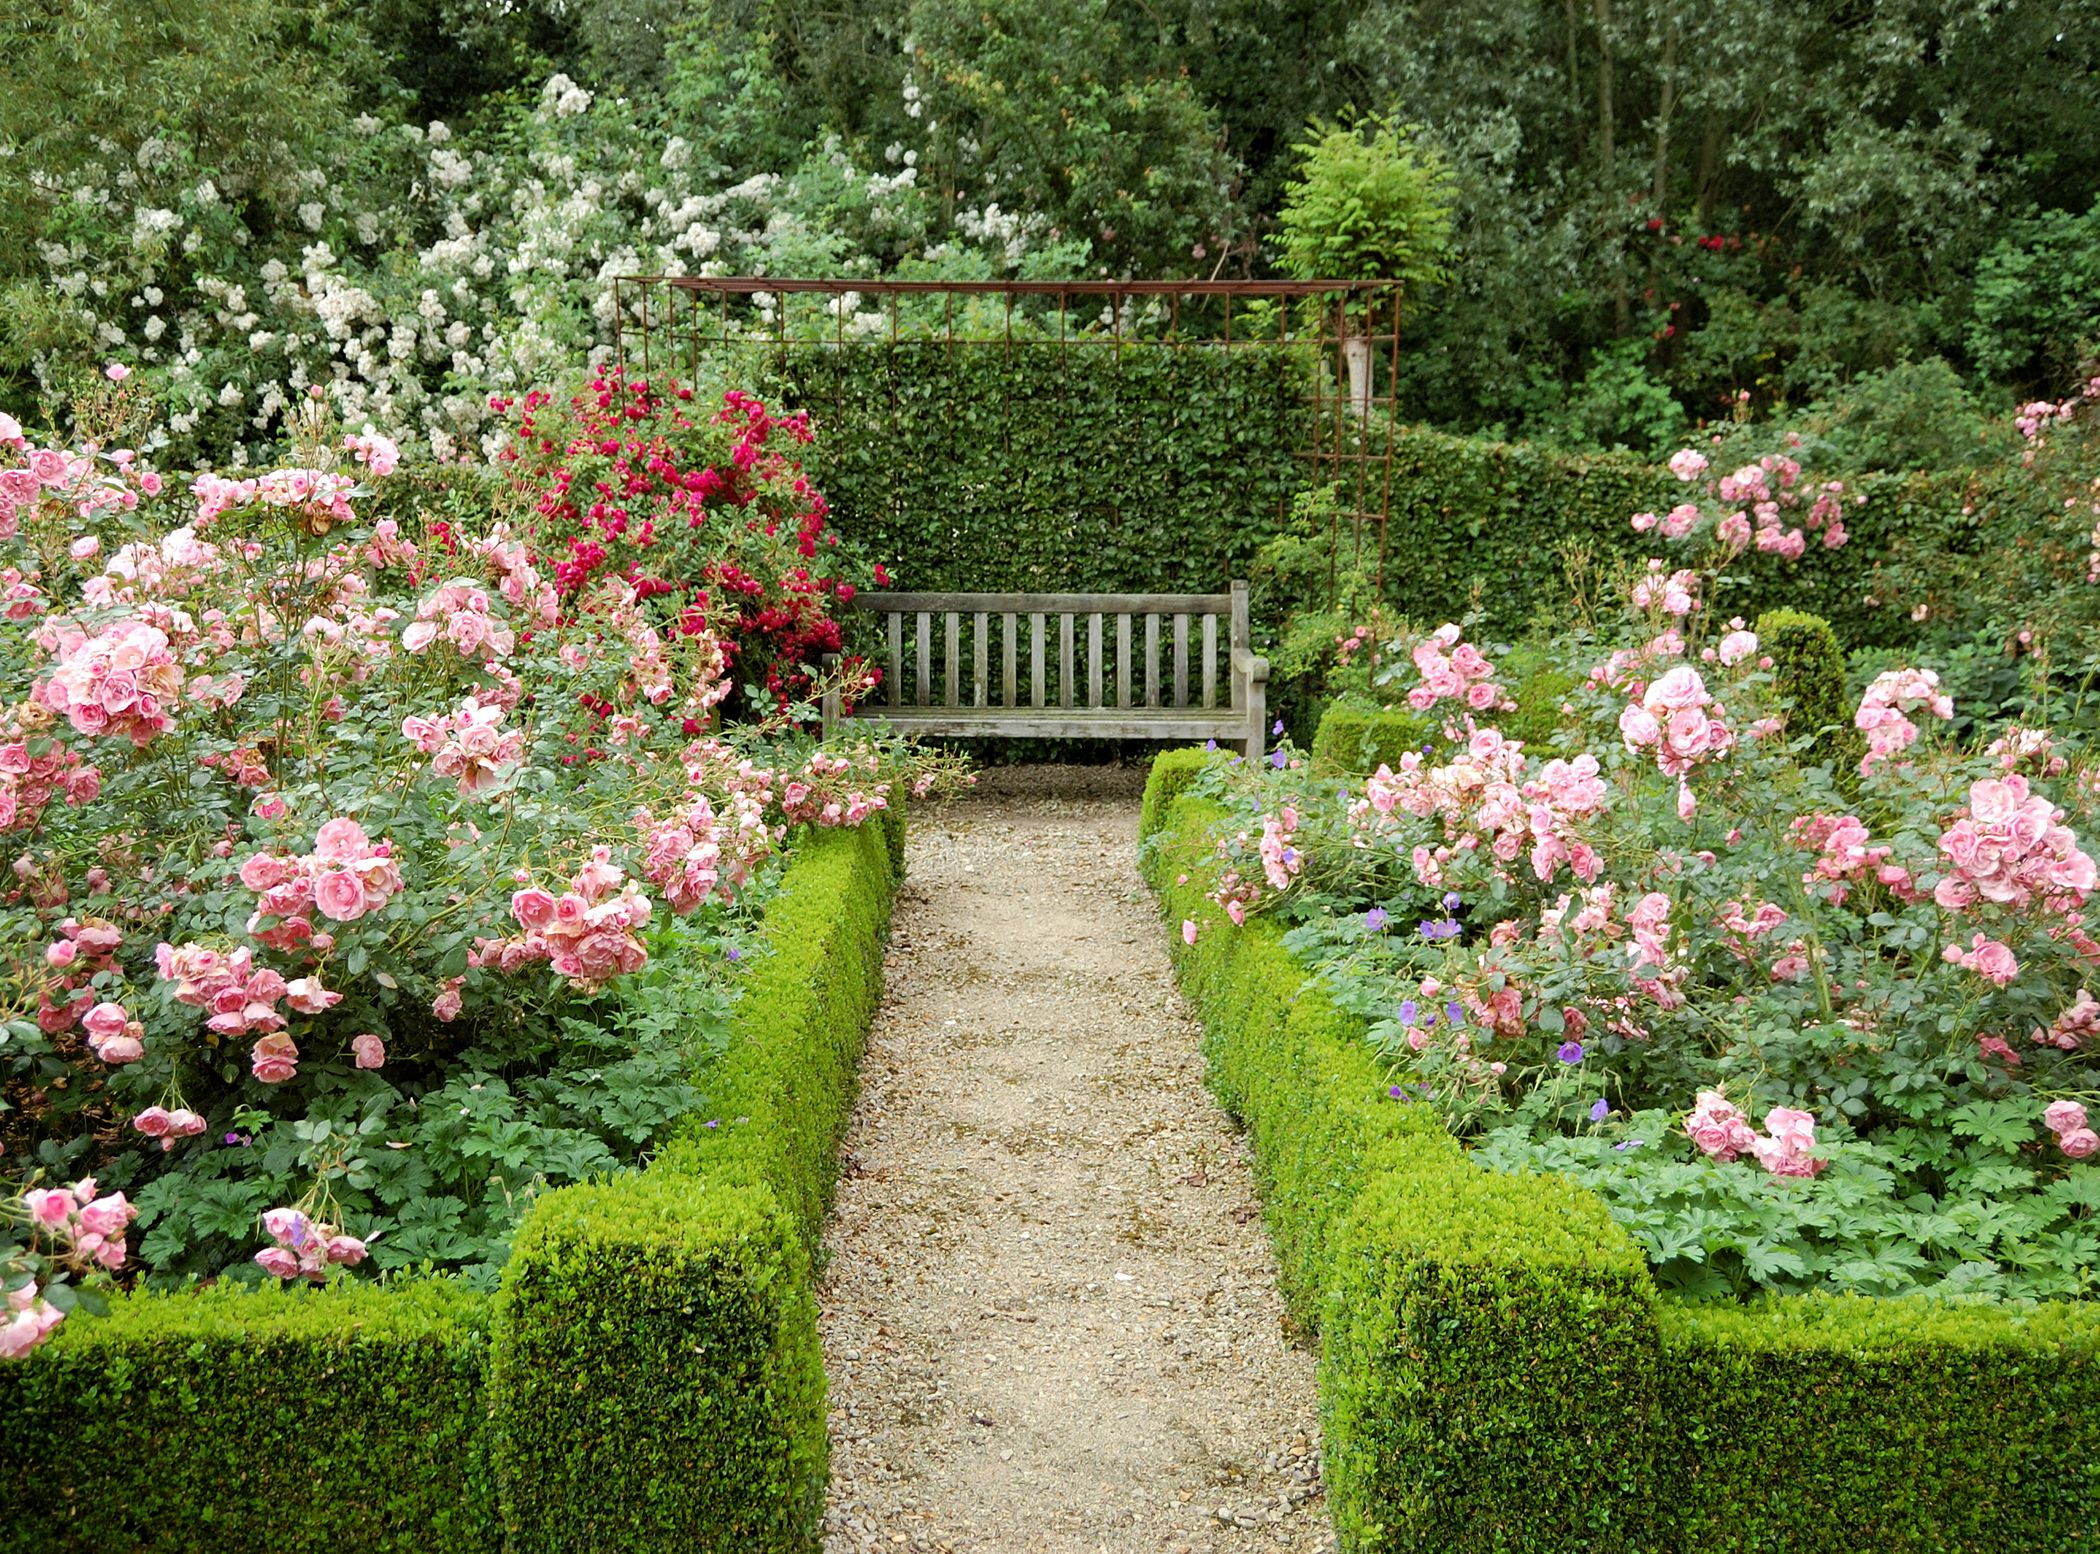 10 English Garden Design Ideas How To Make An English Garden Landscape - Design-gardens-ideas